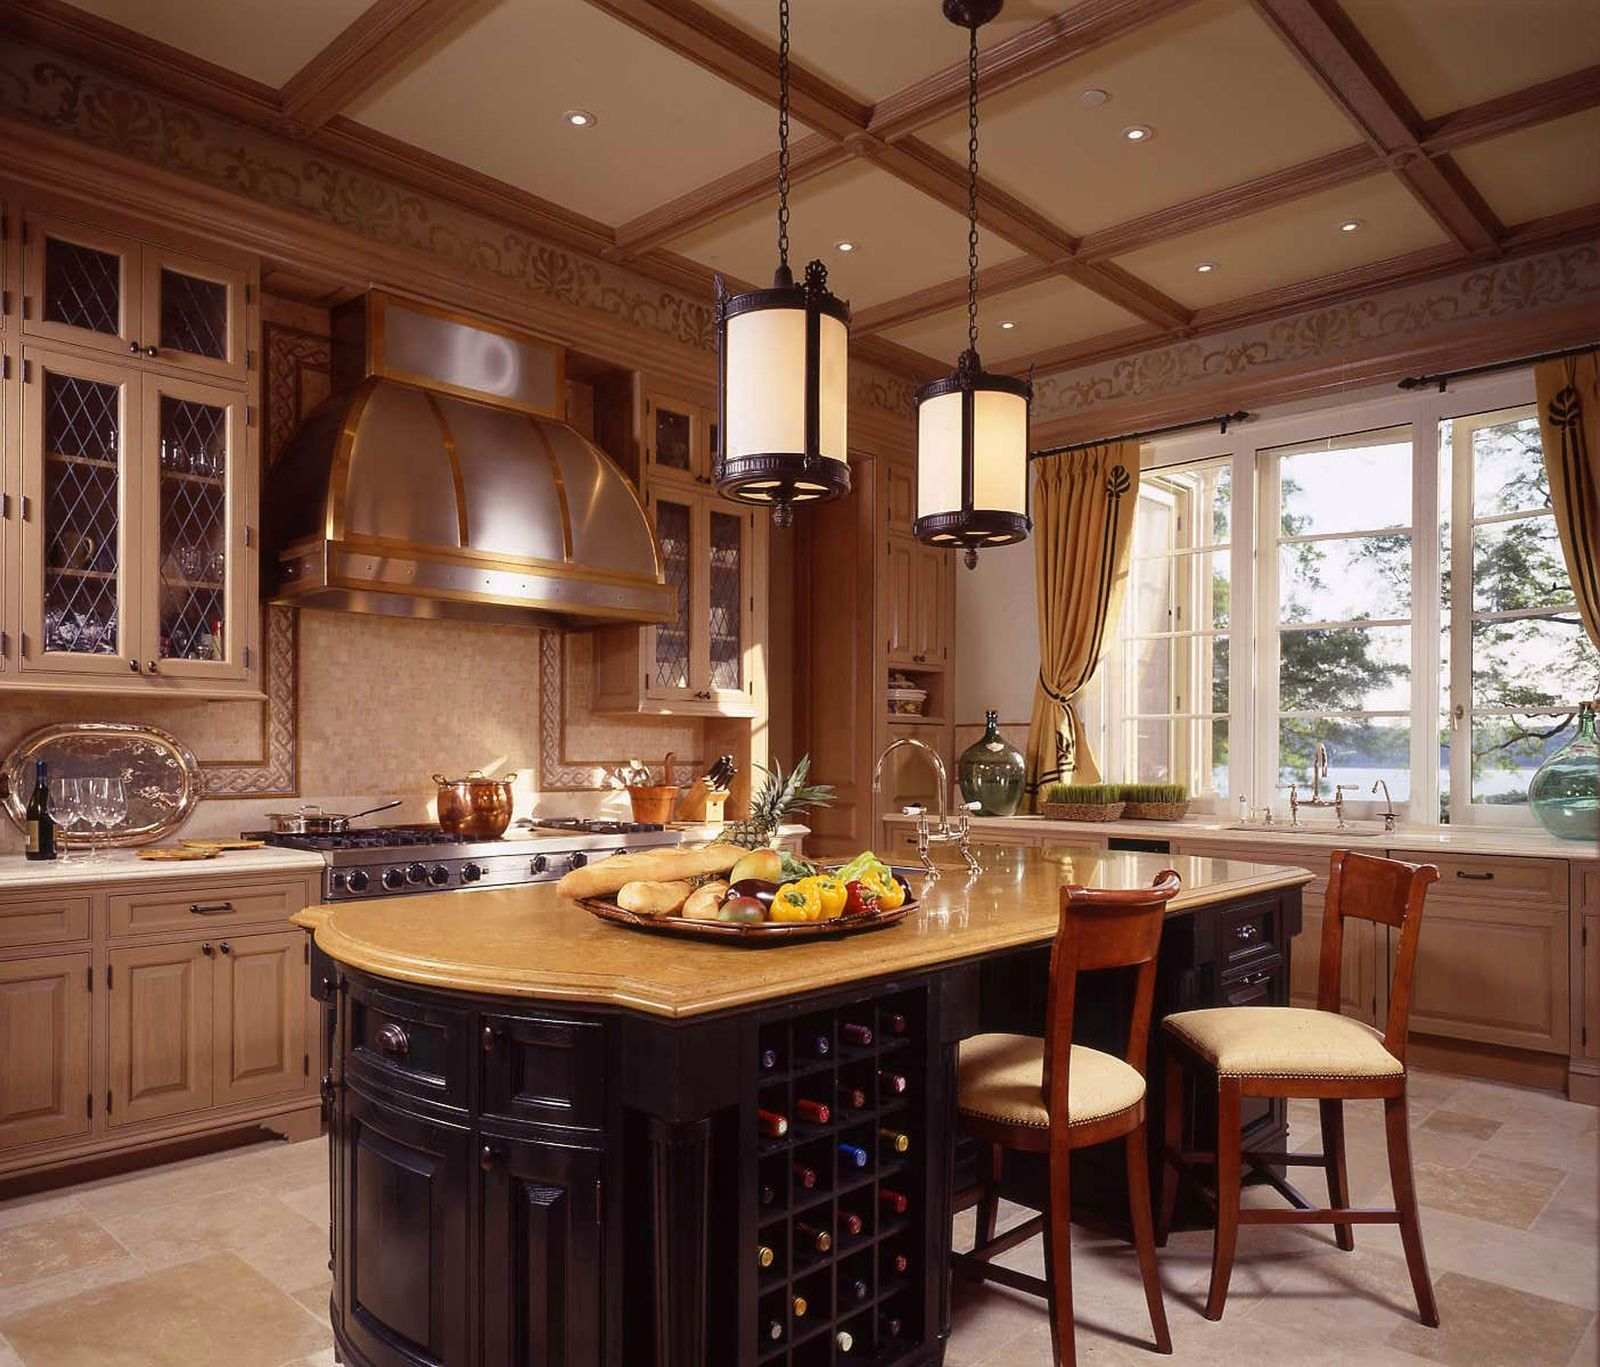 New York Kitchen Design: 50 Incredible Chef's Kitchens For Every Type Of Cook